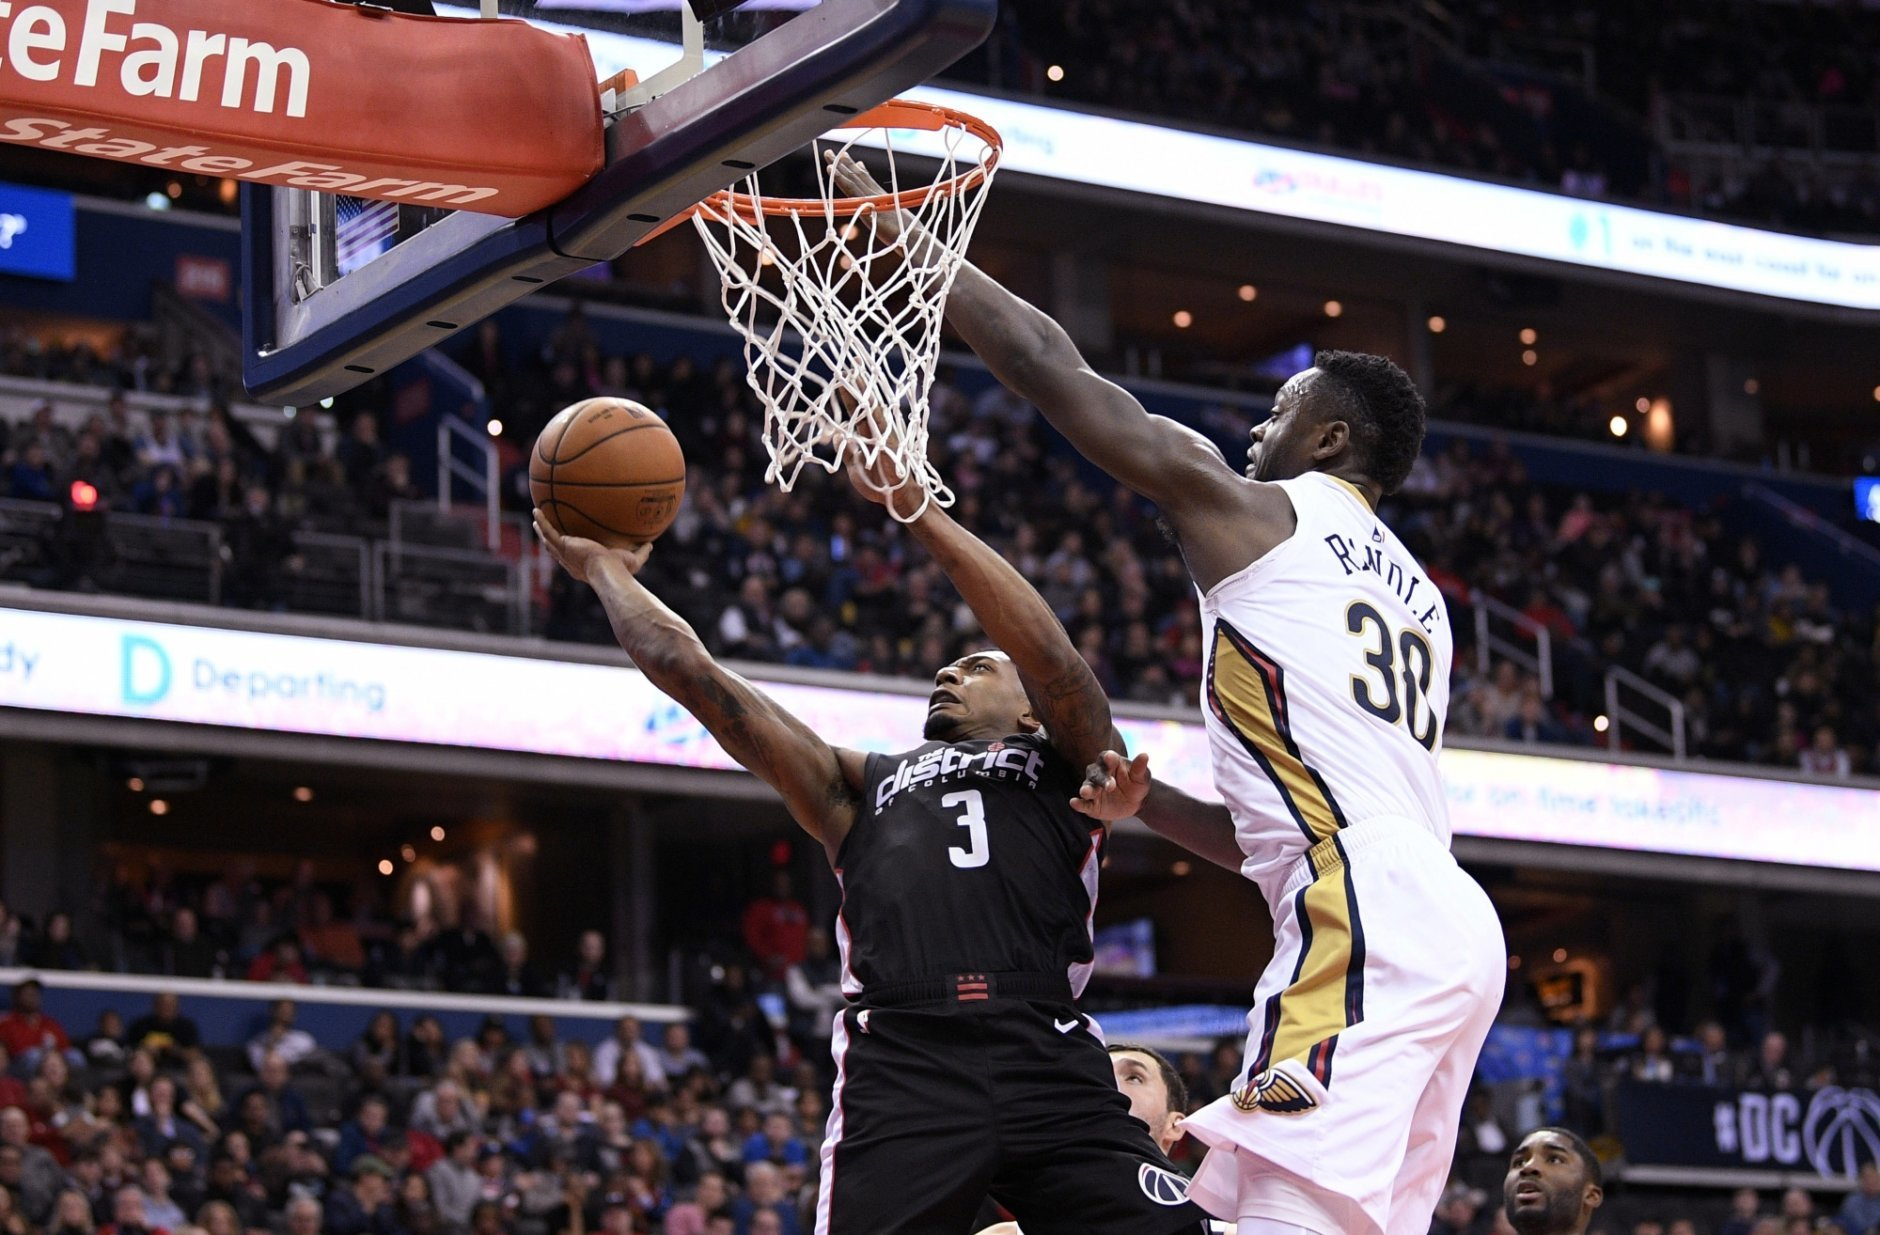 Washington Wizards guard Bradley Beal (3) goes to the basket against New Orleans Pelicans forward Julius Randle (30) during the second half of an NBA basketball game Saturday, Nov. 24, 2018, in Washington. The Wizards won 124-114. (AP Photo/Nick Wass)